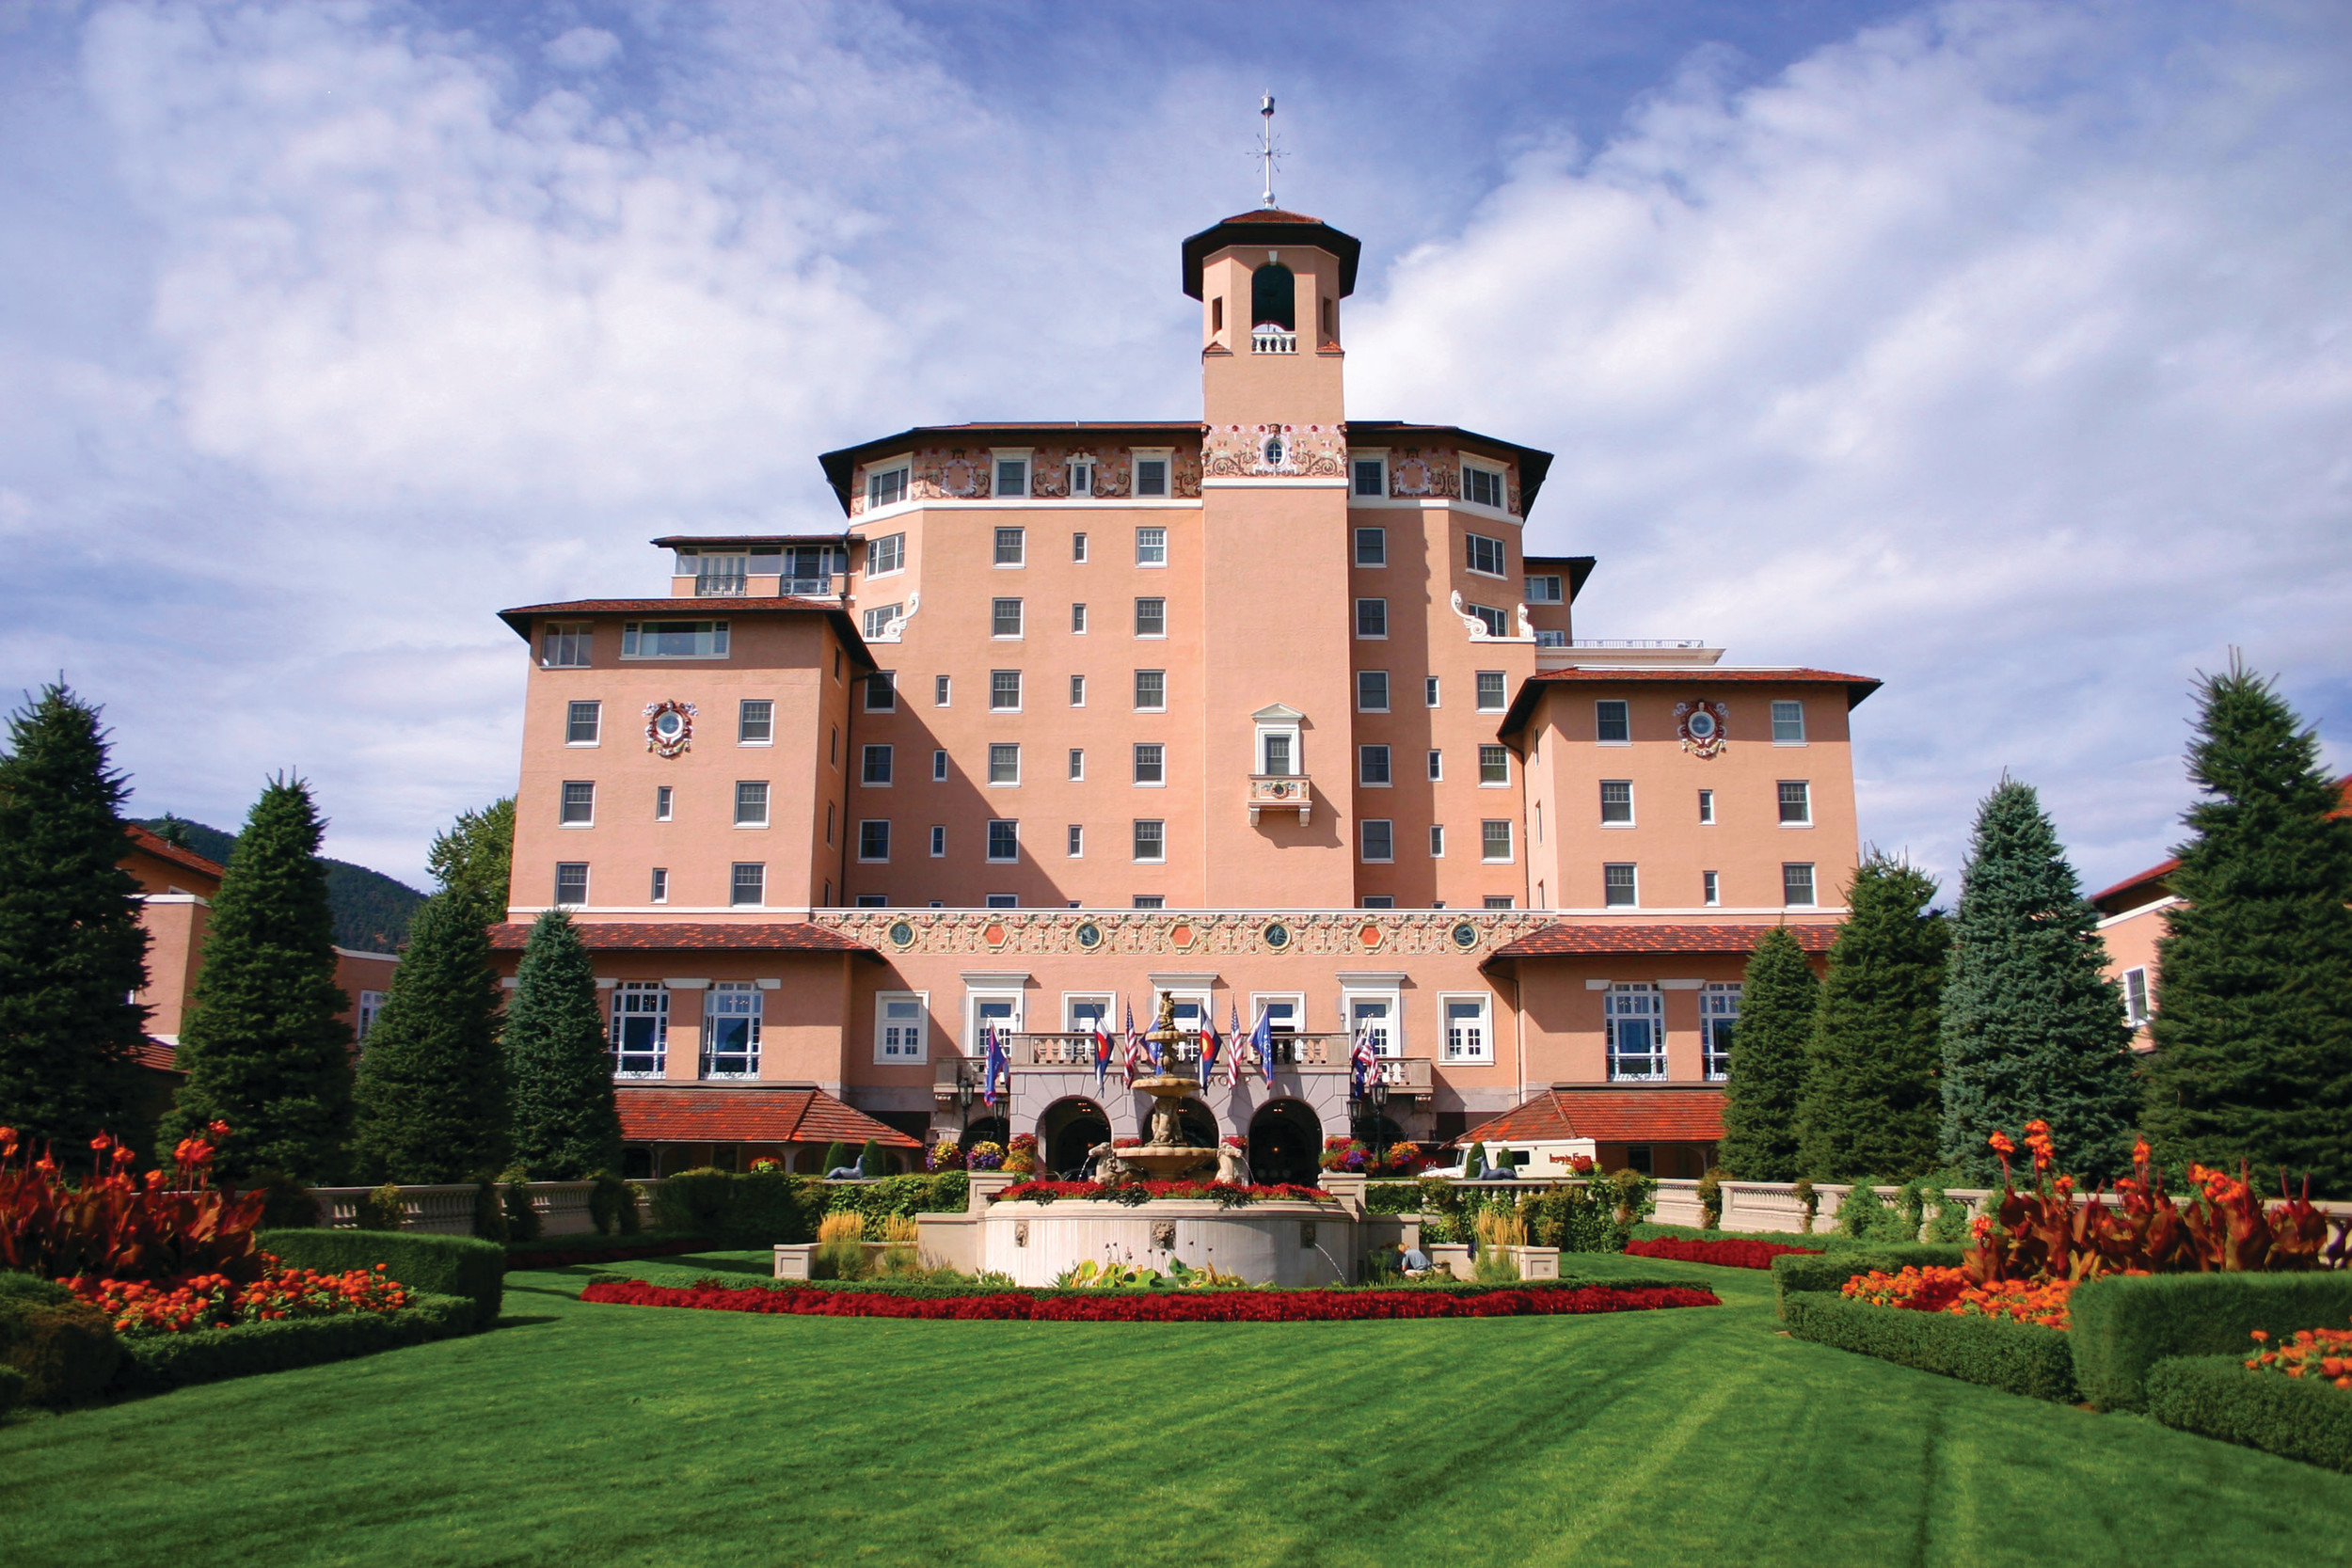 The historic Broadmoor resort will be the stunning venue for the first-ever joint Annual Meeting of Inland and the Southenn Newspaper Publishers Association.